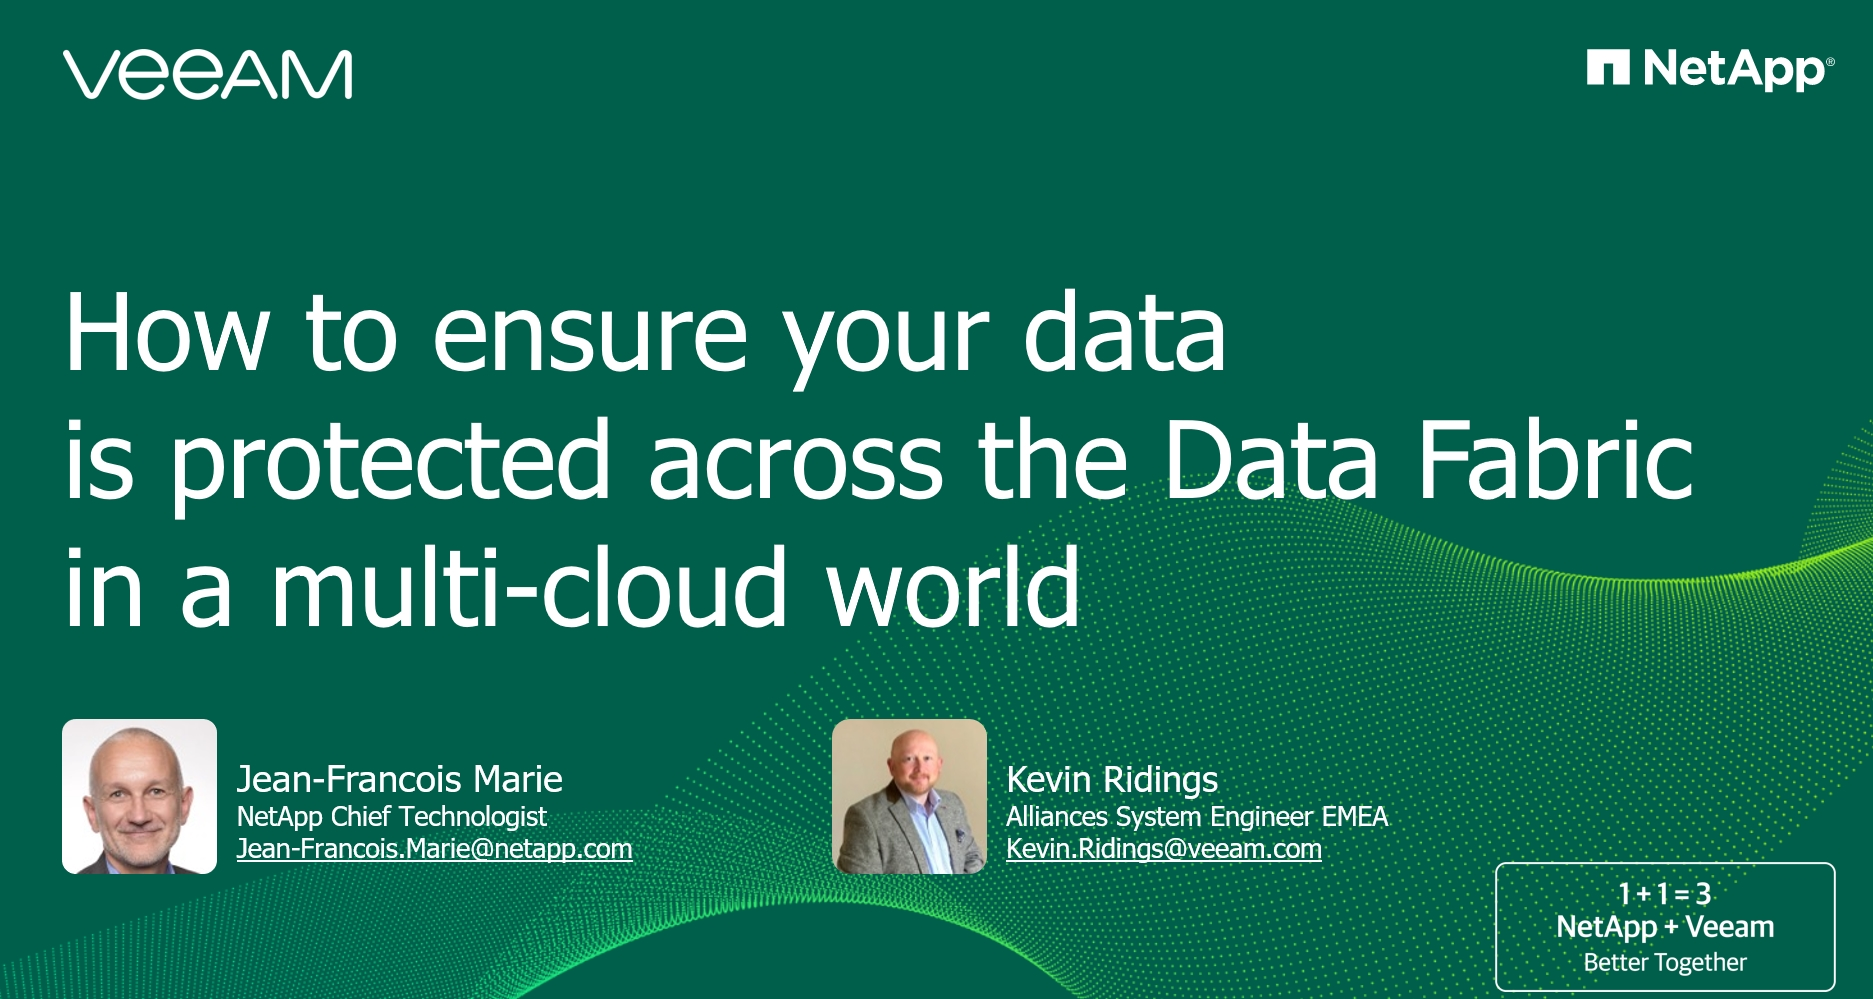 How to ensure your data is protected across the Data Fabric in a multi-cloud world